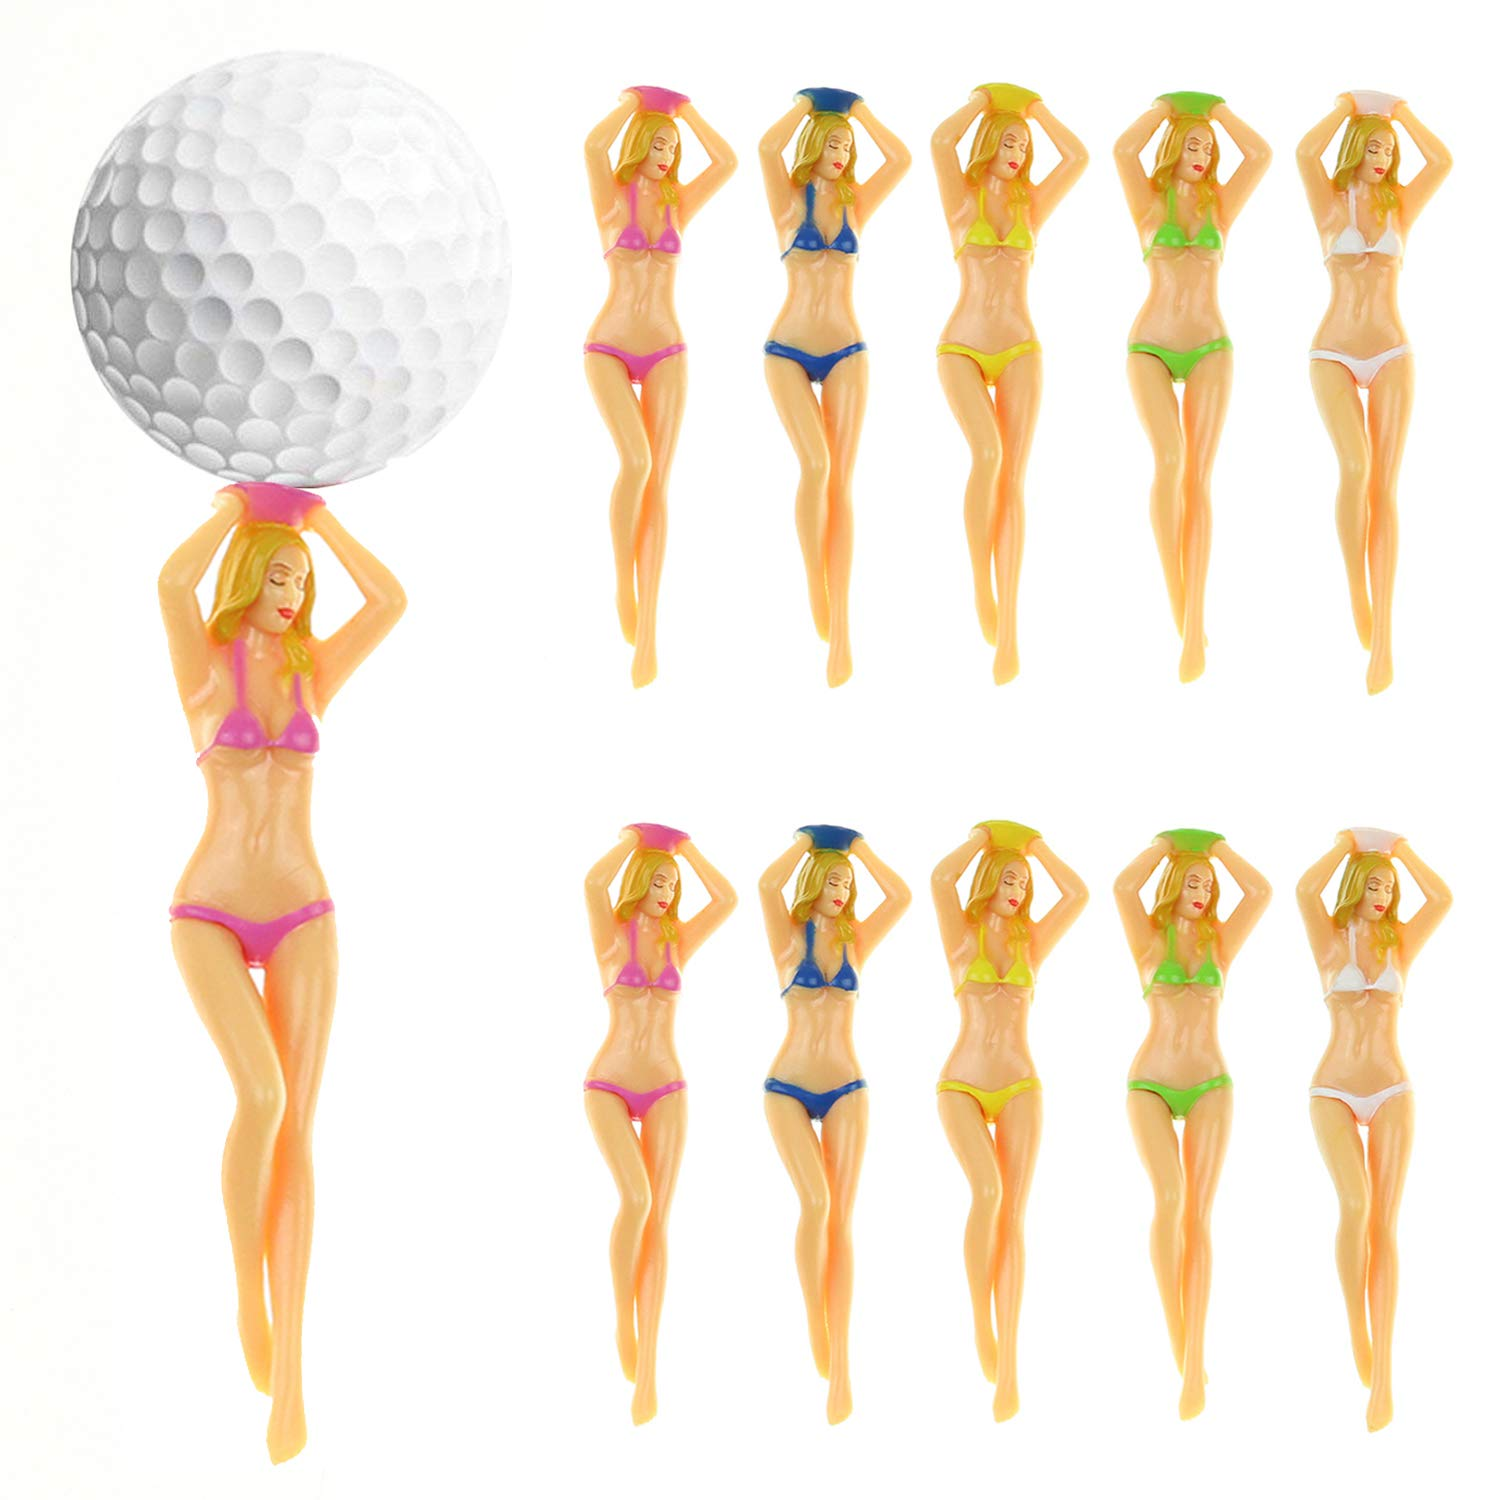 Kofull Colored Bikini Woman Golf Tees Plastic Tee Plastic Lady Golf tee Divot Tool -10/Pack by Kofull